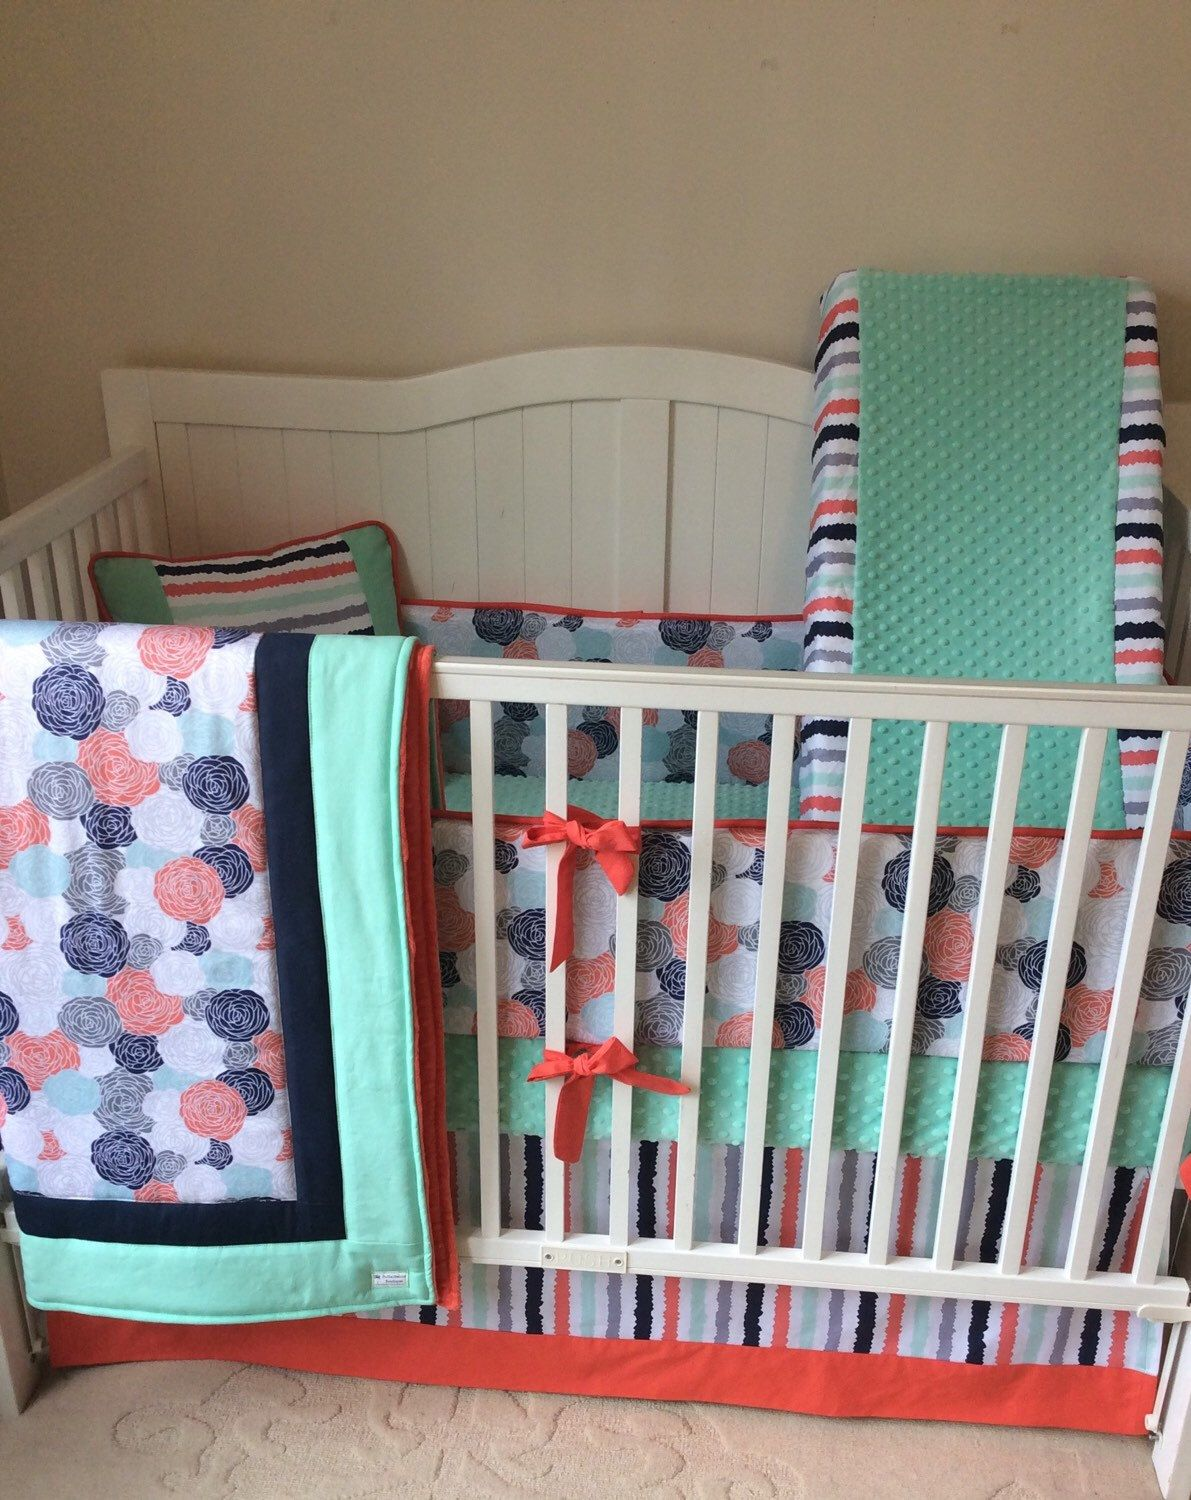 C Mint Navy And Gray Baby Curl Crib Bedding With Fl Stripe Www Etsy Listing 179951225 Set In